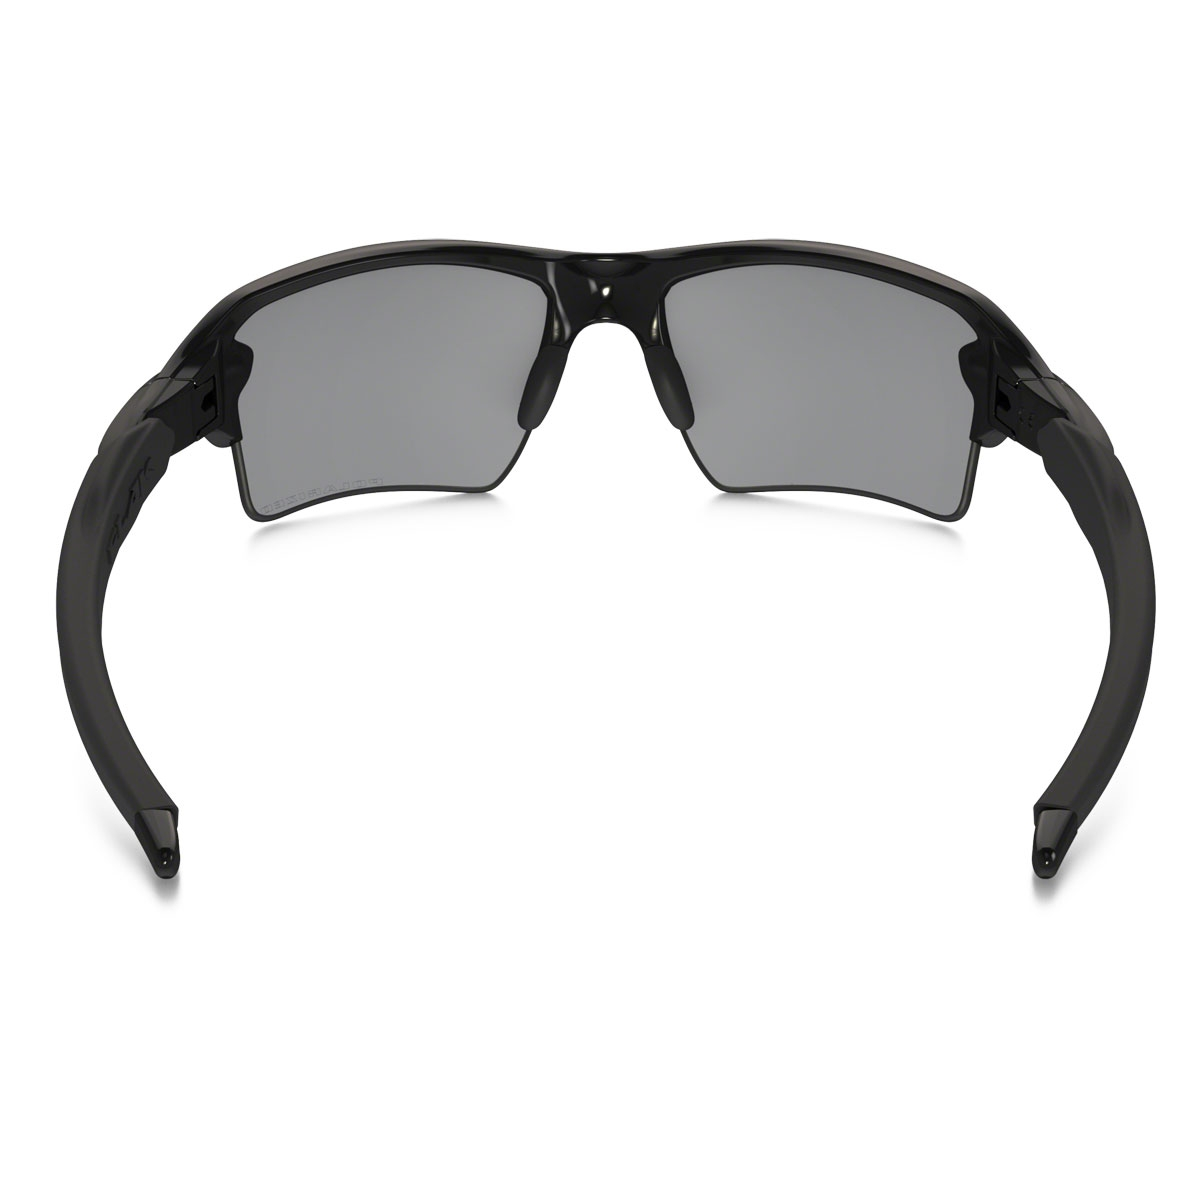 2155bd38b1 ... Image of Oakley Flak 2.0XL Men s Polarized Sunglasses - Polished Black    Black Iridium Polarized ...